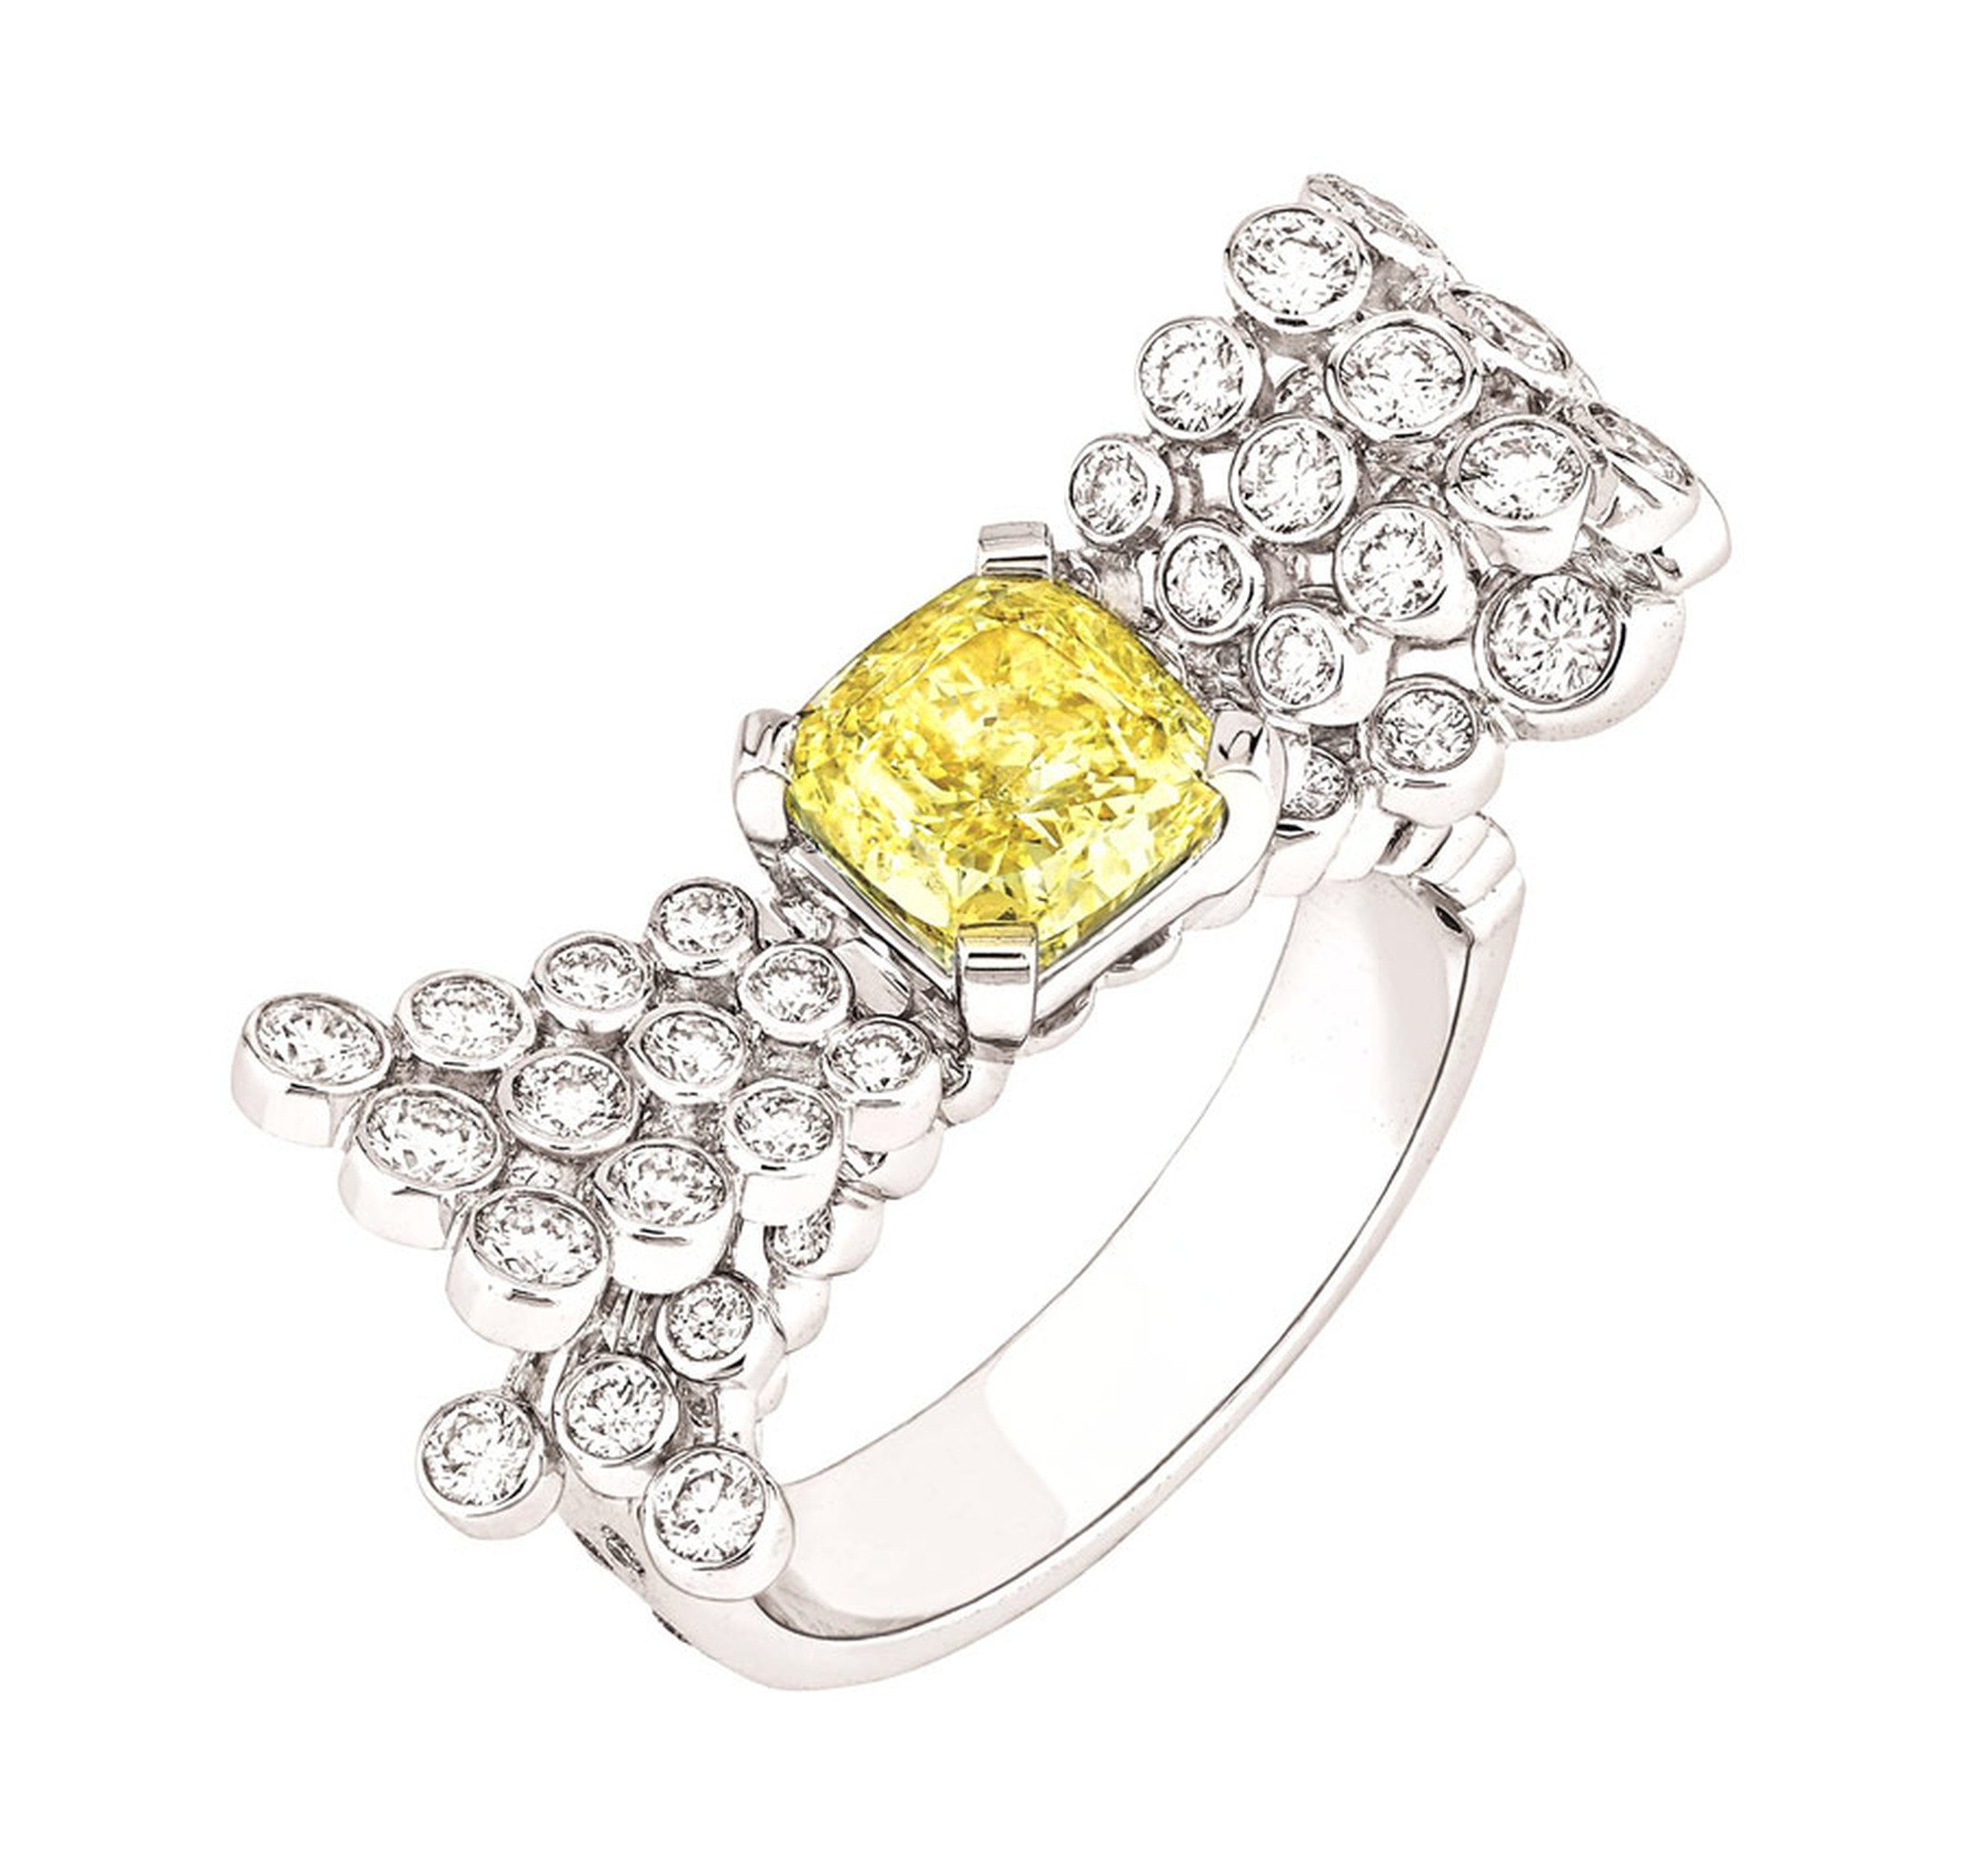 Chanel-Bague-Ruban-Mademoiselle-Dia-Jaune-PM